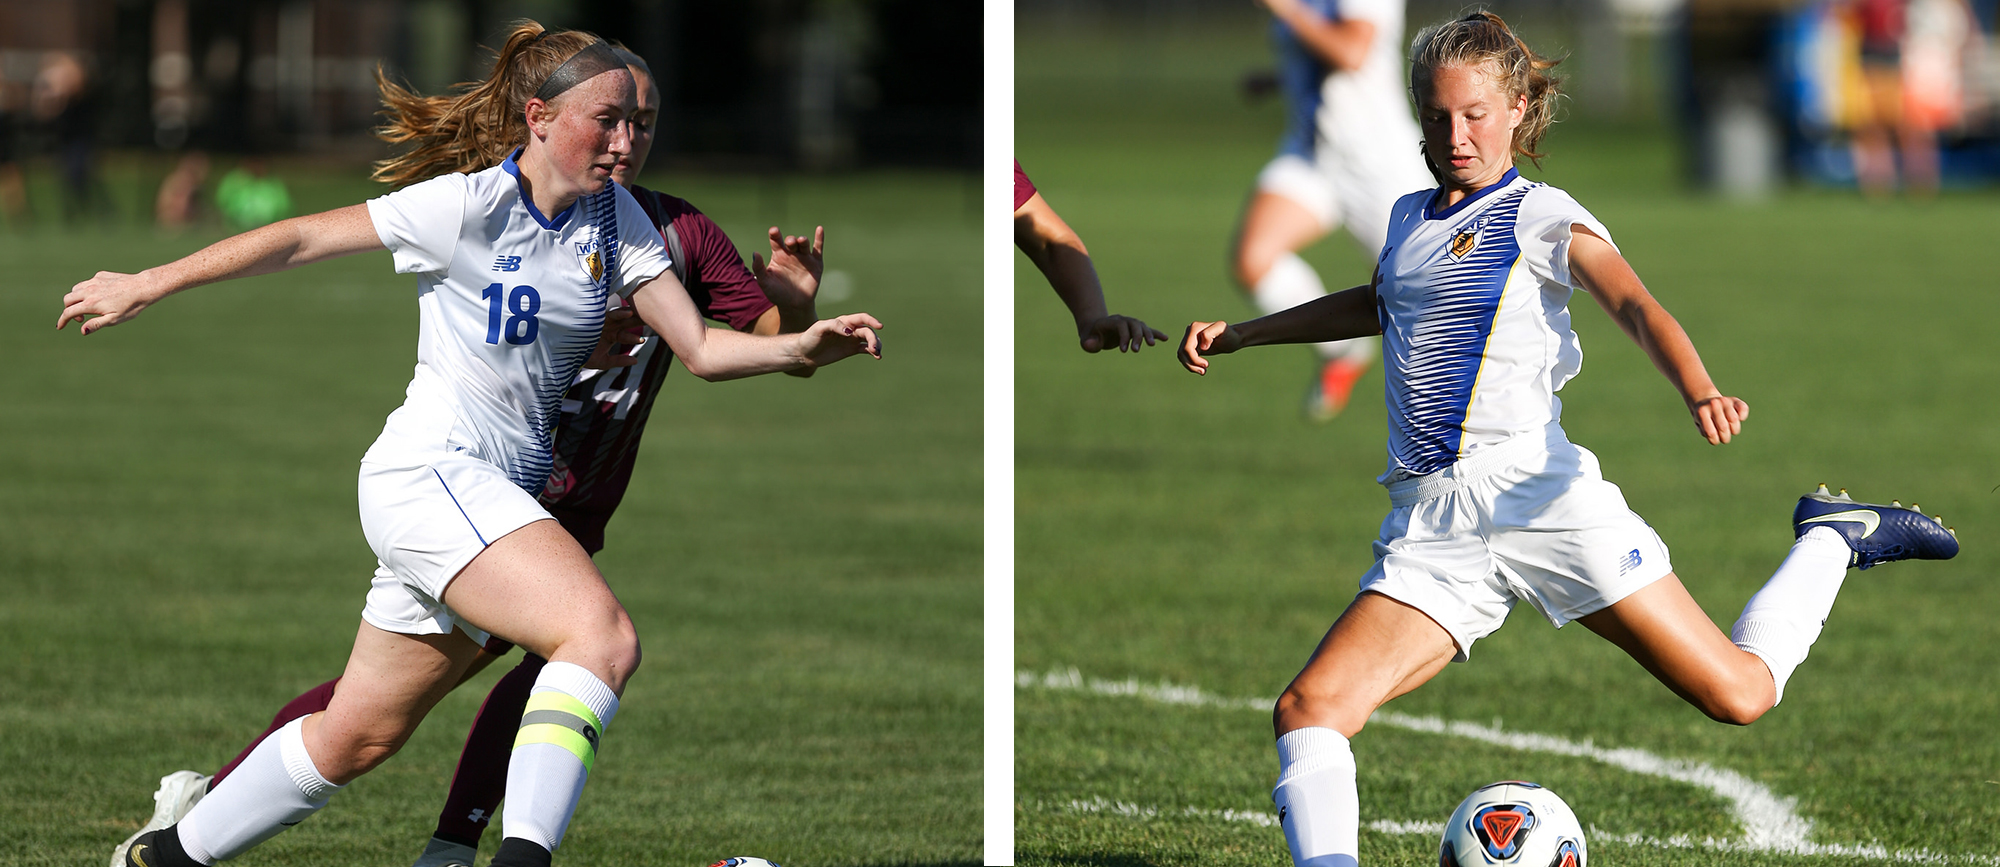 Grimes & Bruehwiler Named to NEWISA All-New England Team